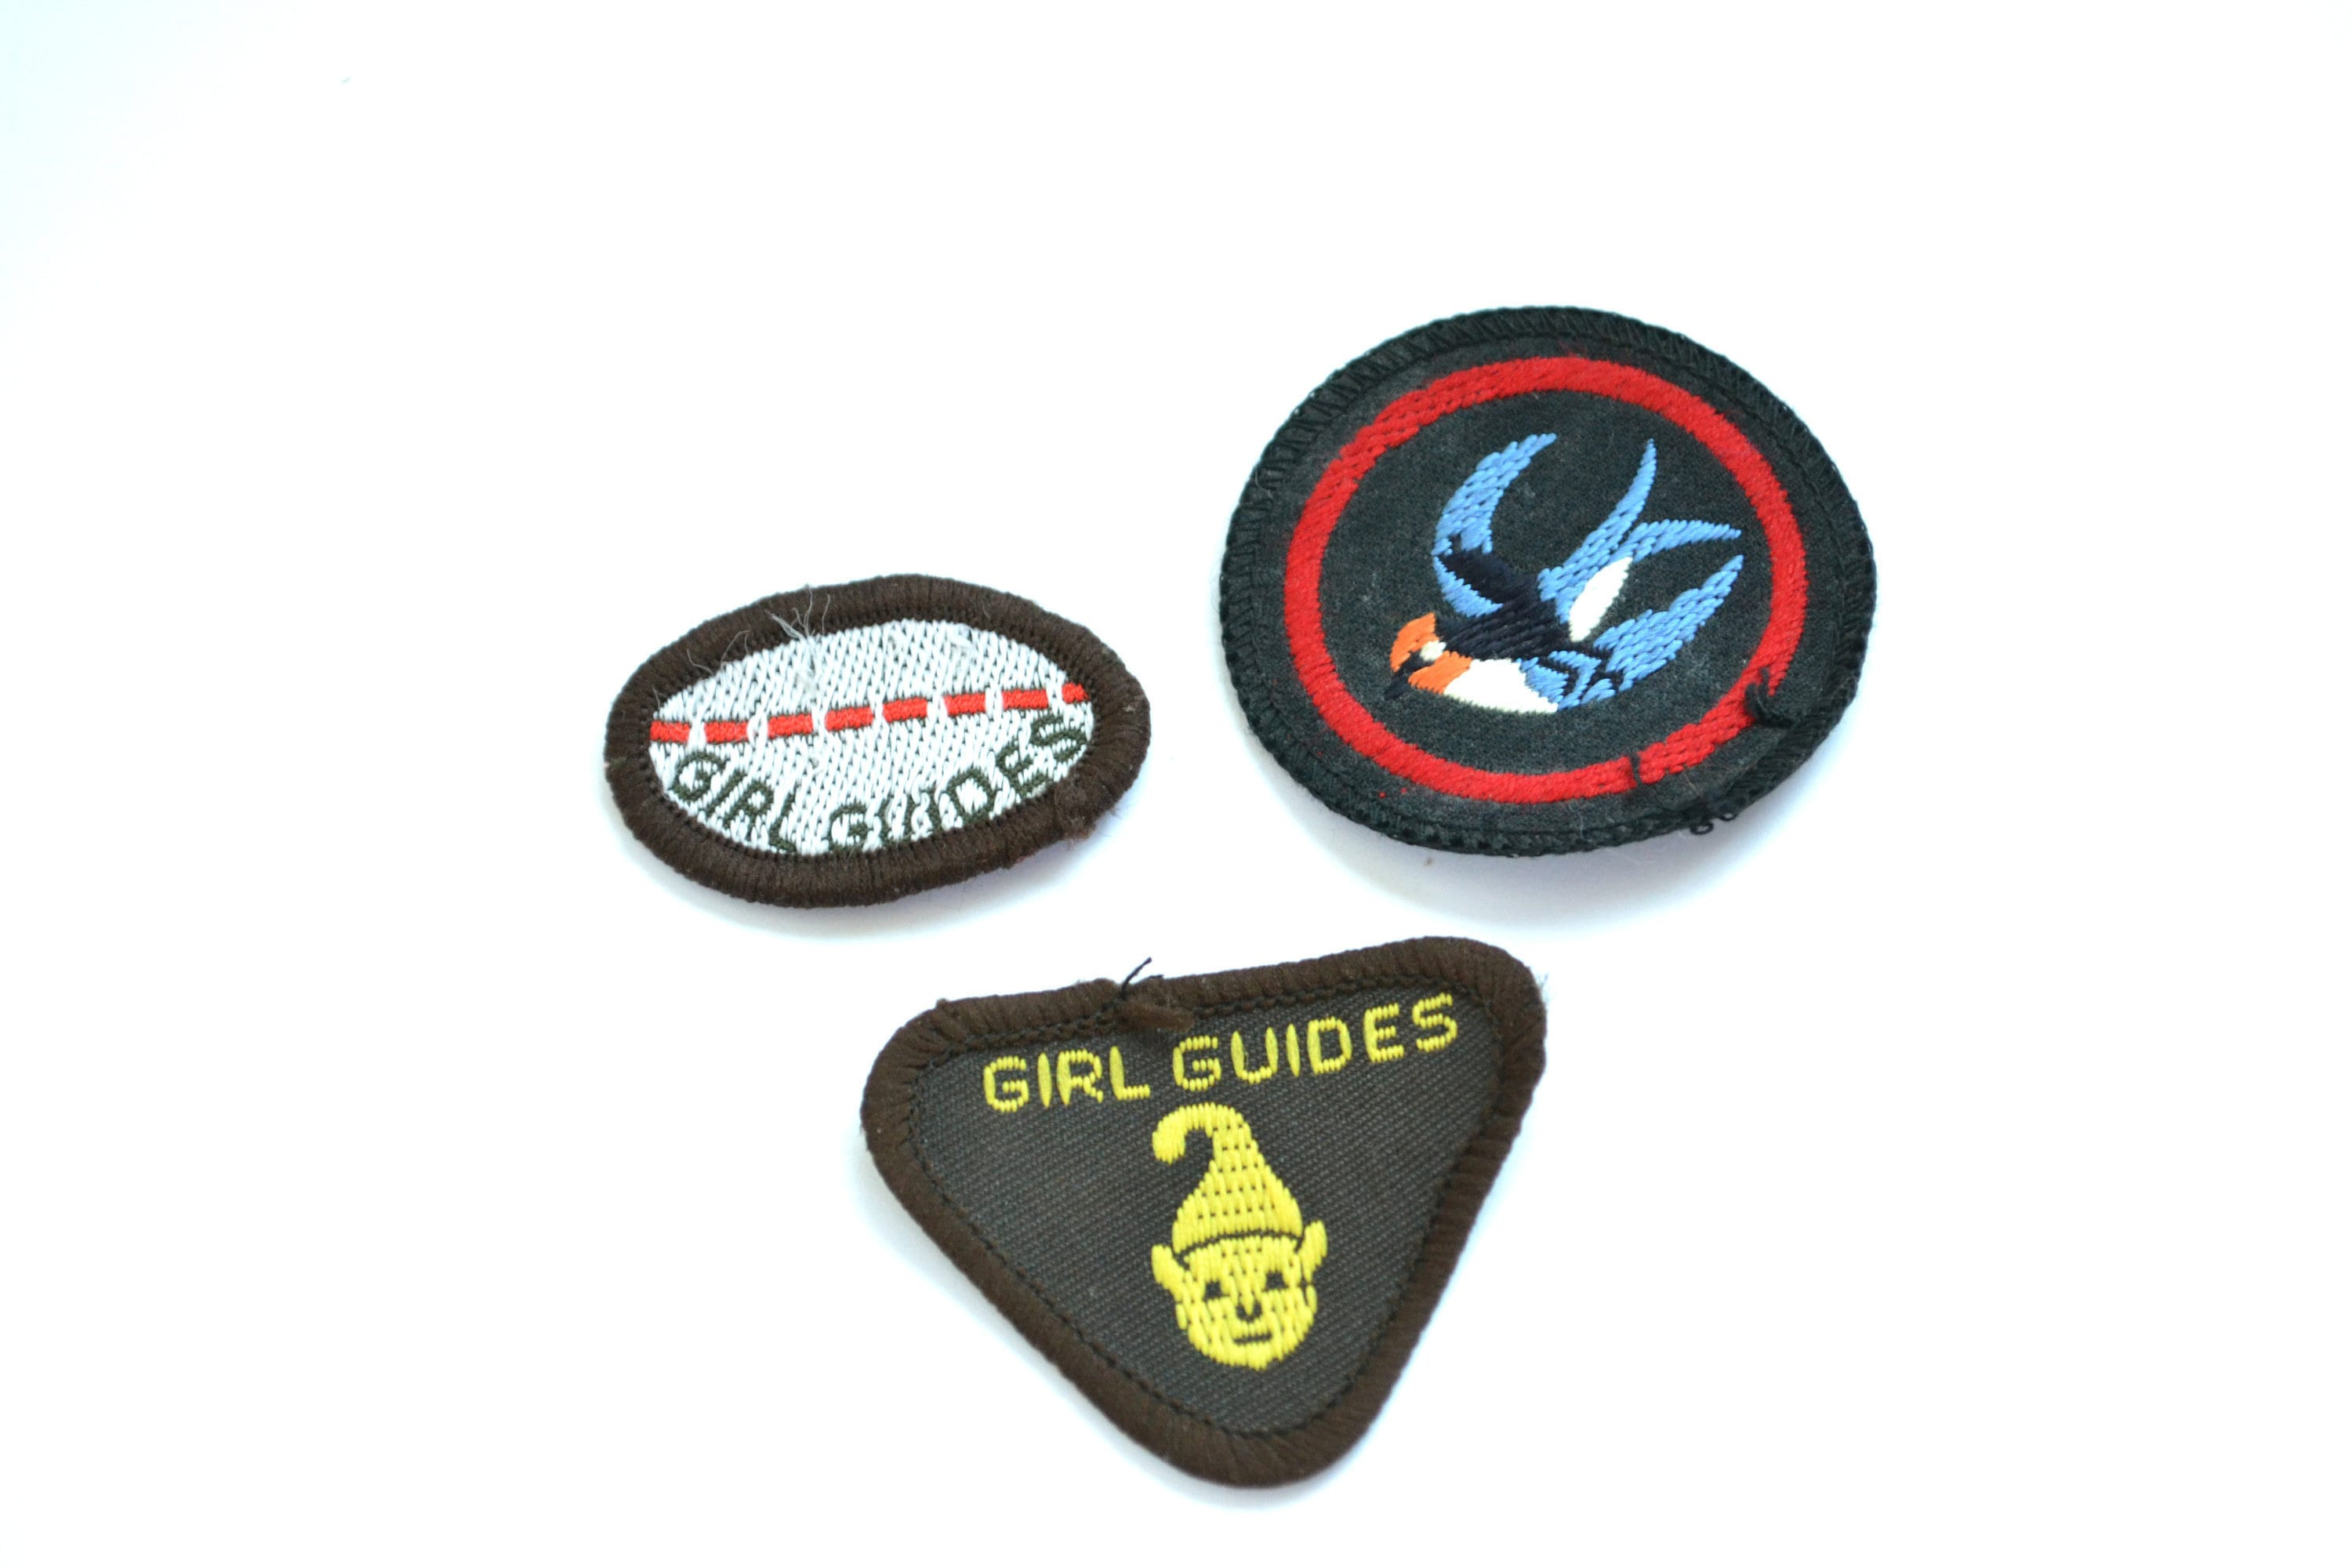 Girl Guide Embroidered Patches Vintage Girl Guides Etsy